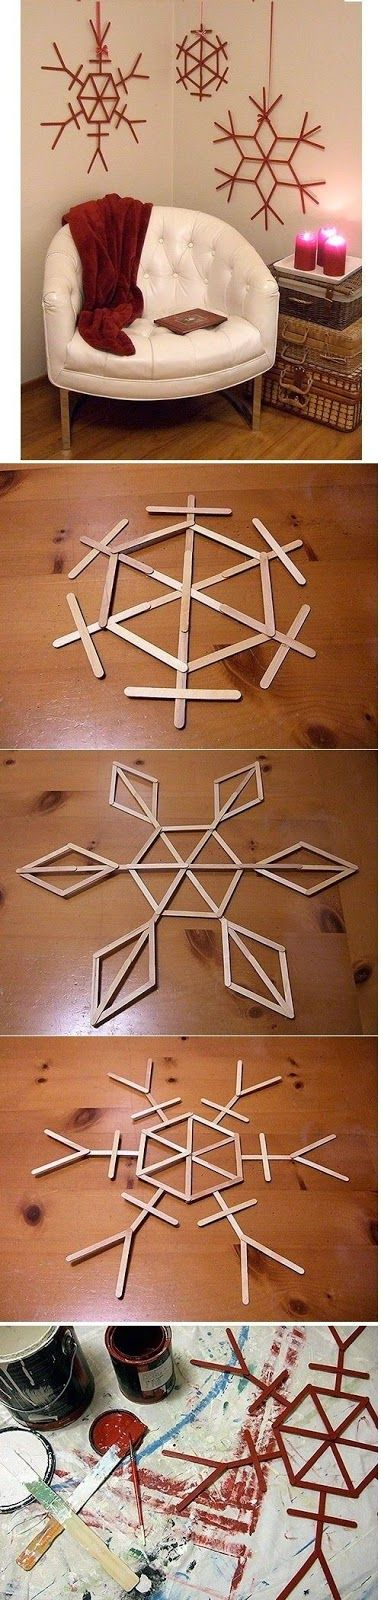 Christmas Craft ~ DIY Popsicle Stick Snowflakes